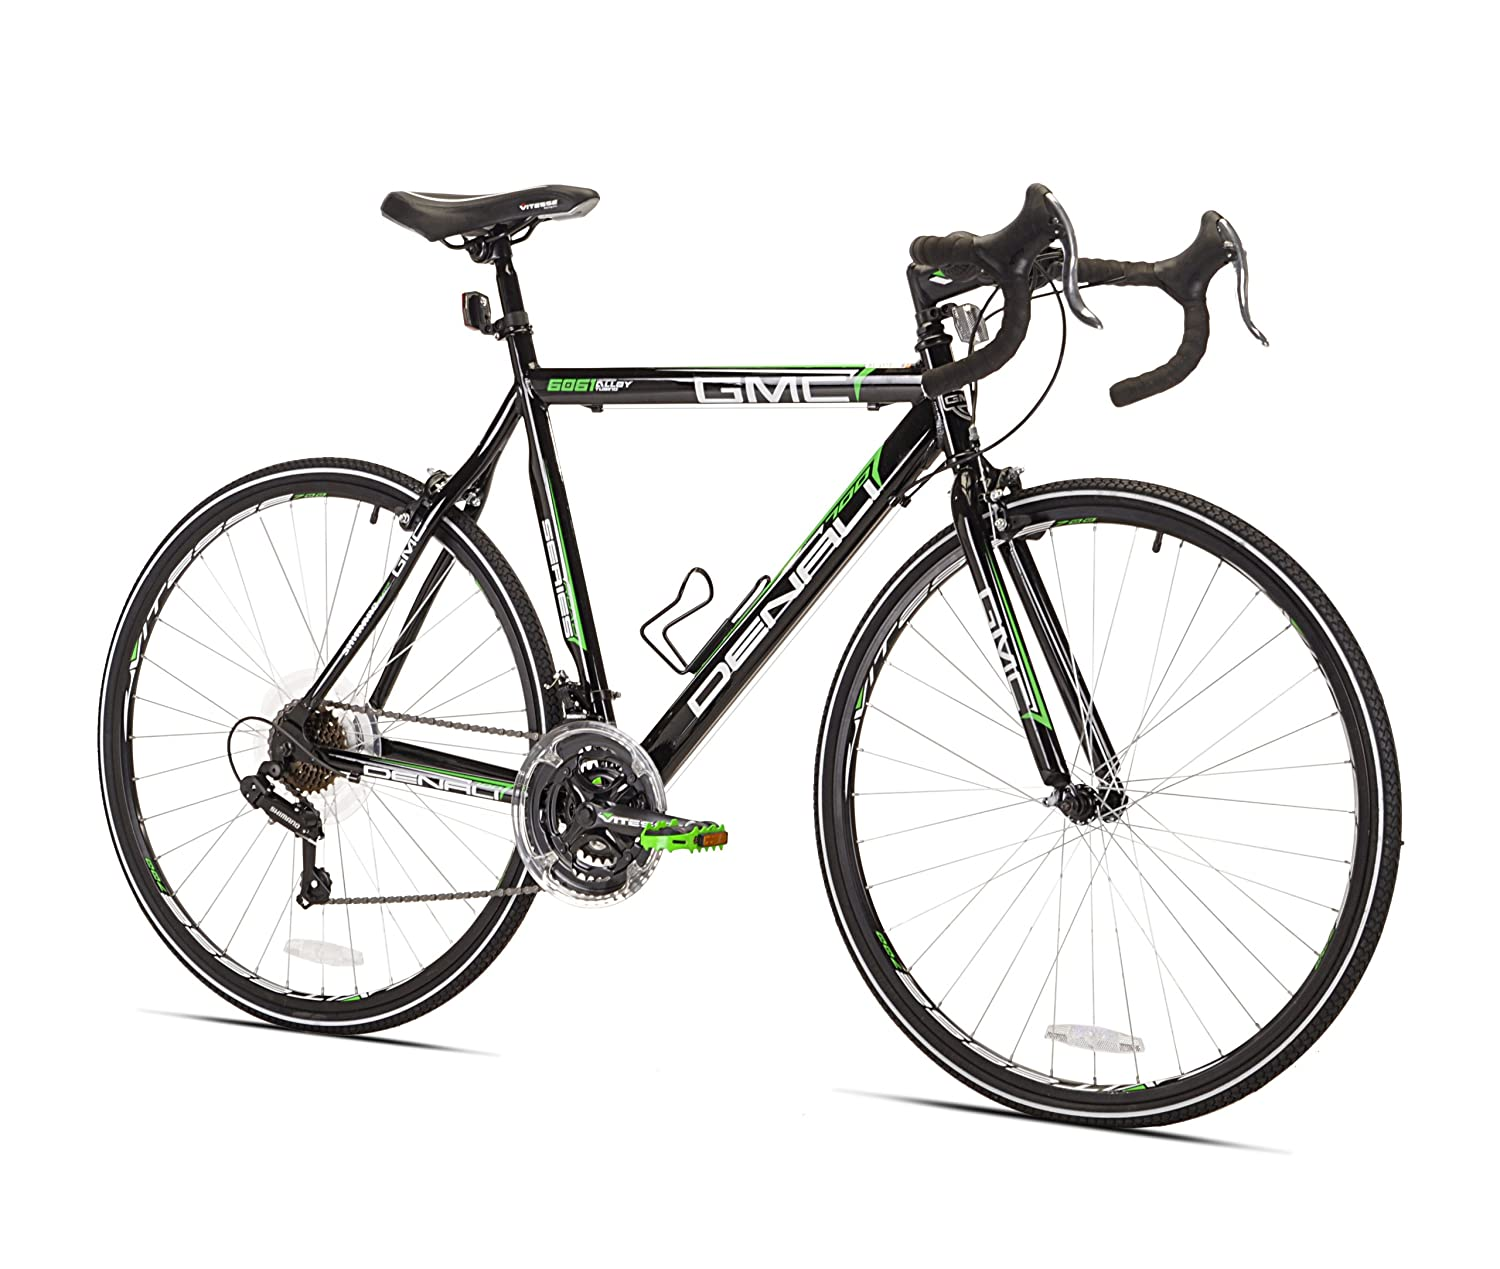 Bikes For Men On Sale GMC Denali Road Bike